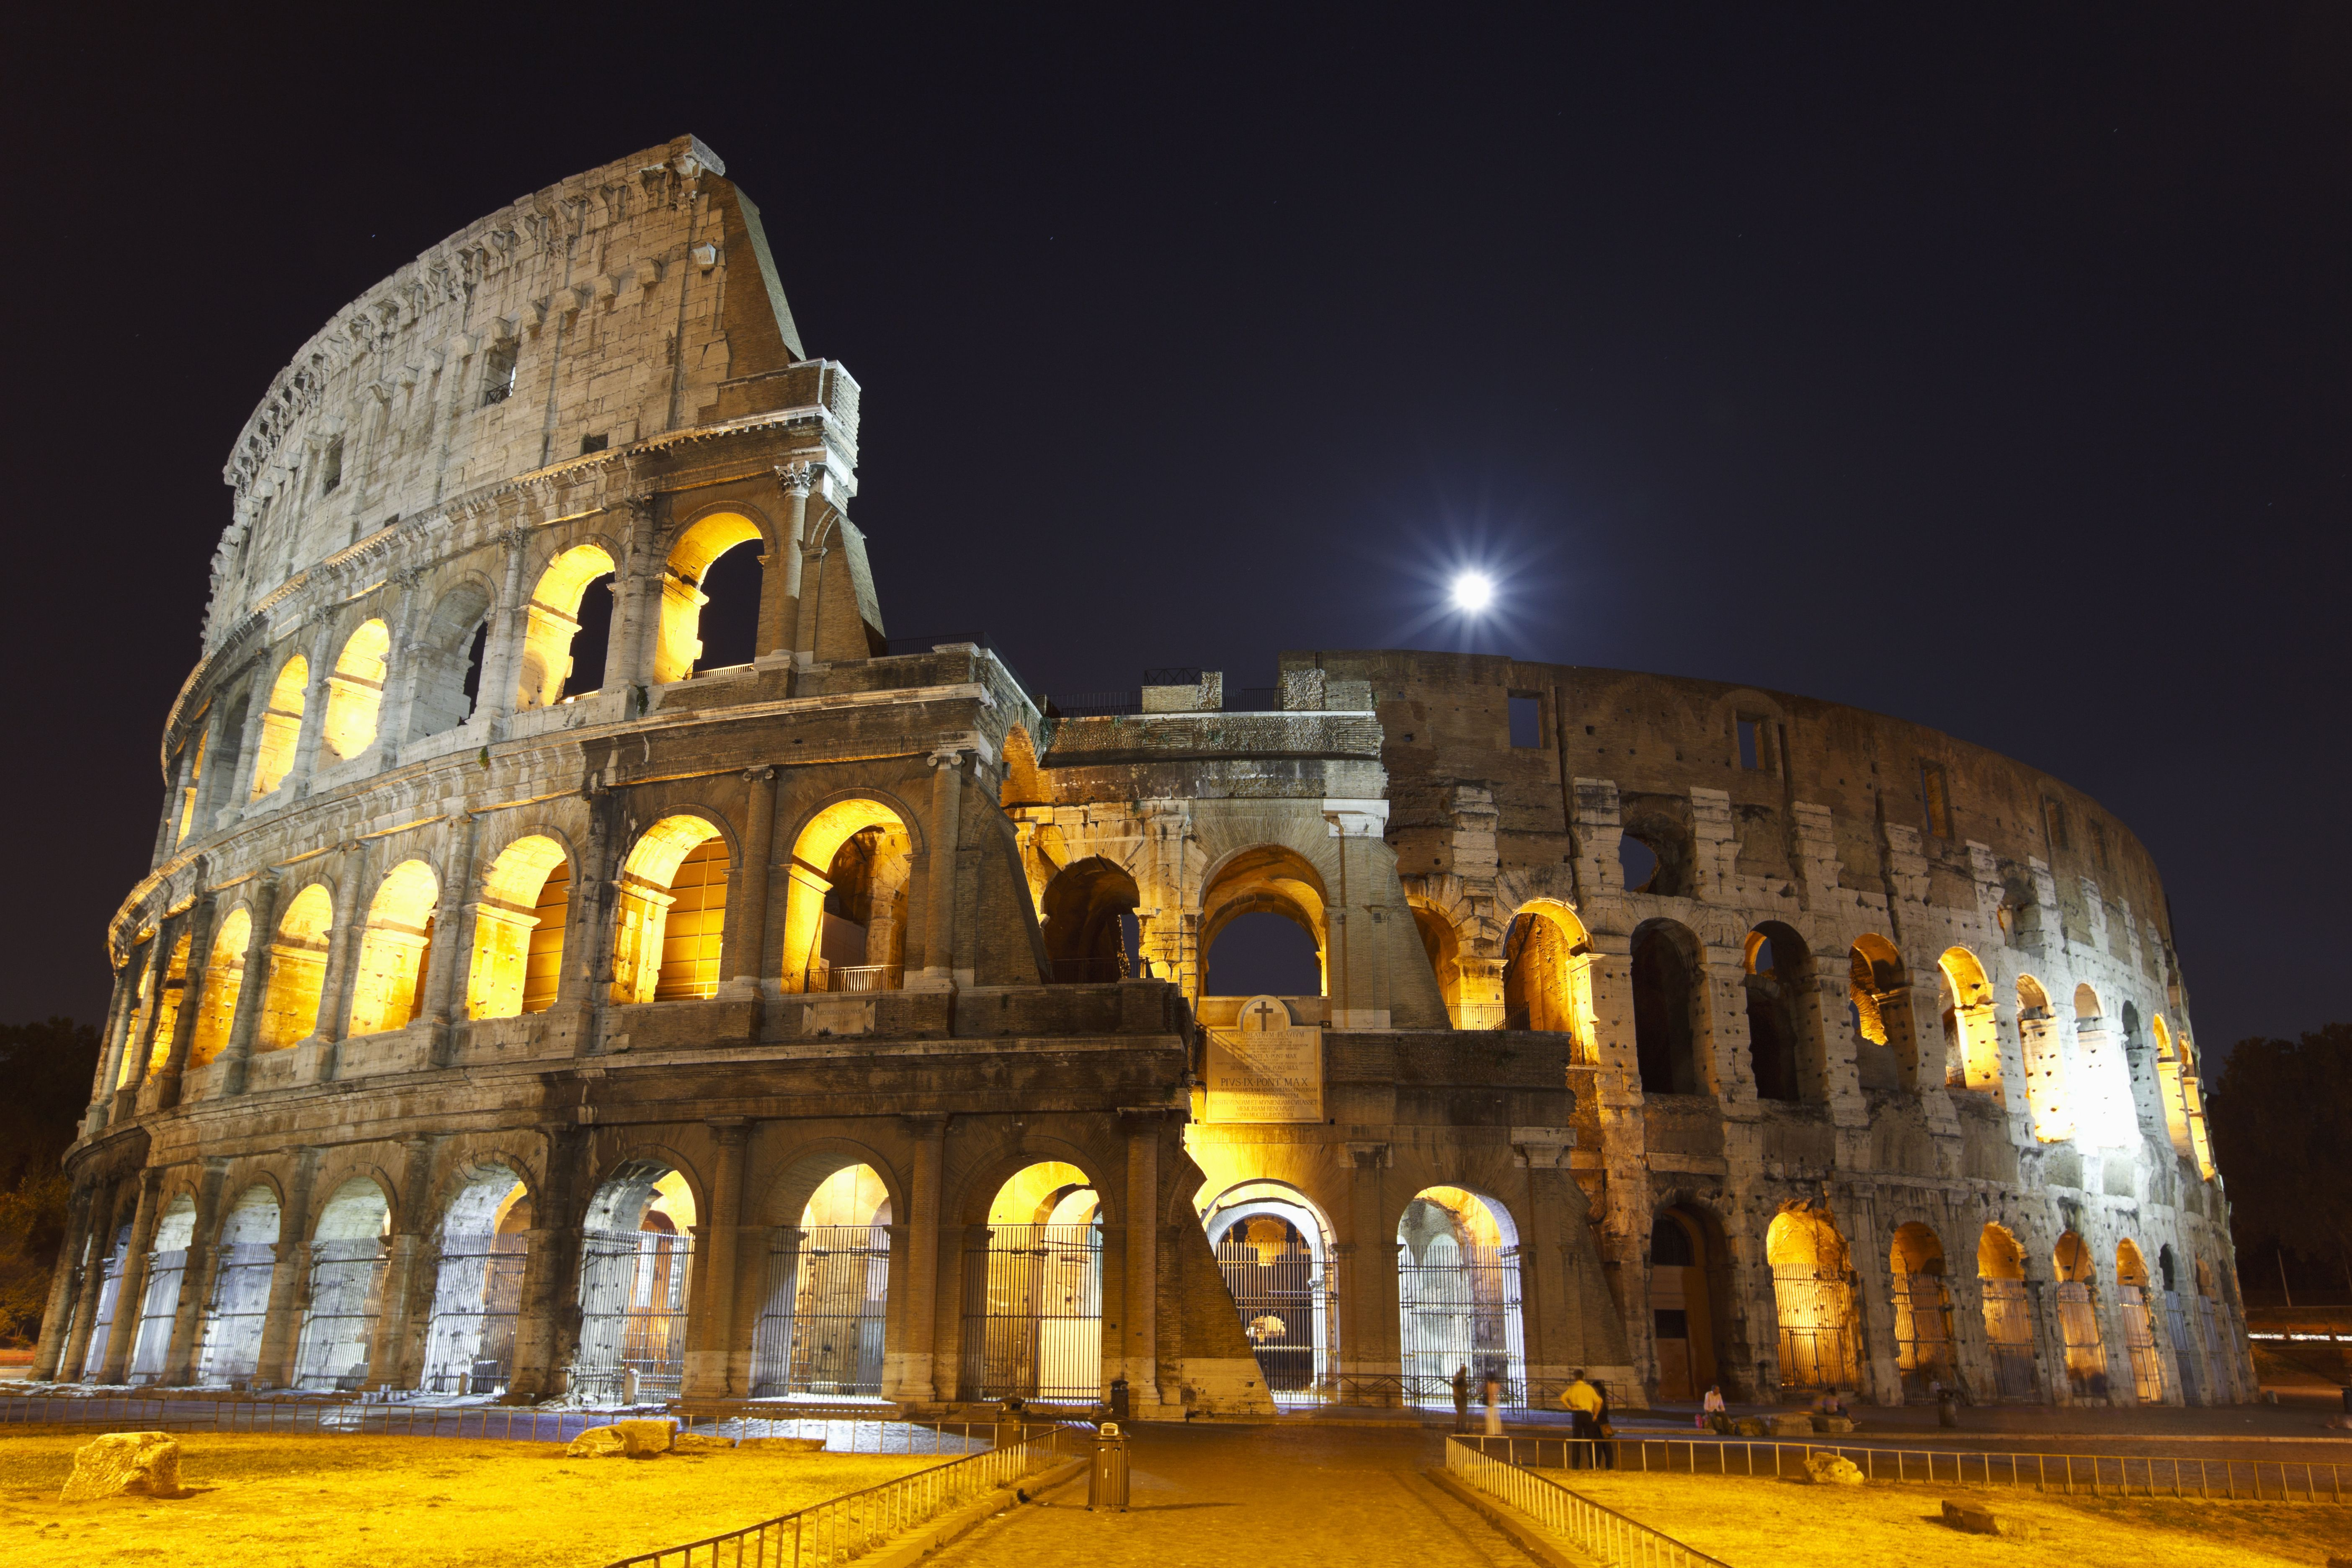 Tour the Colosseum after dark